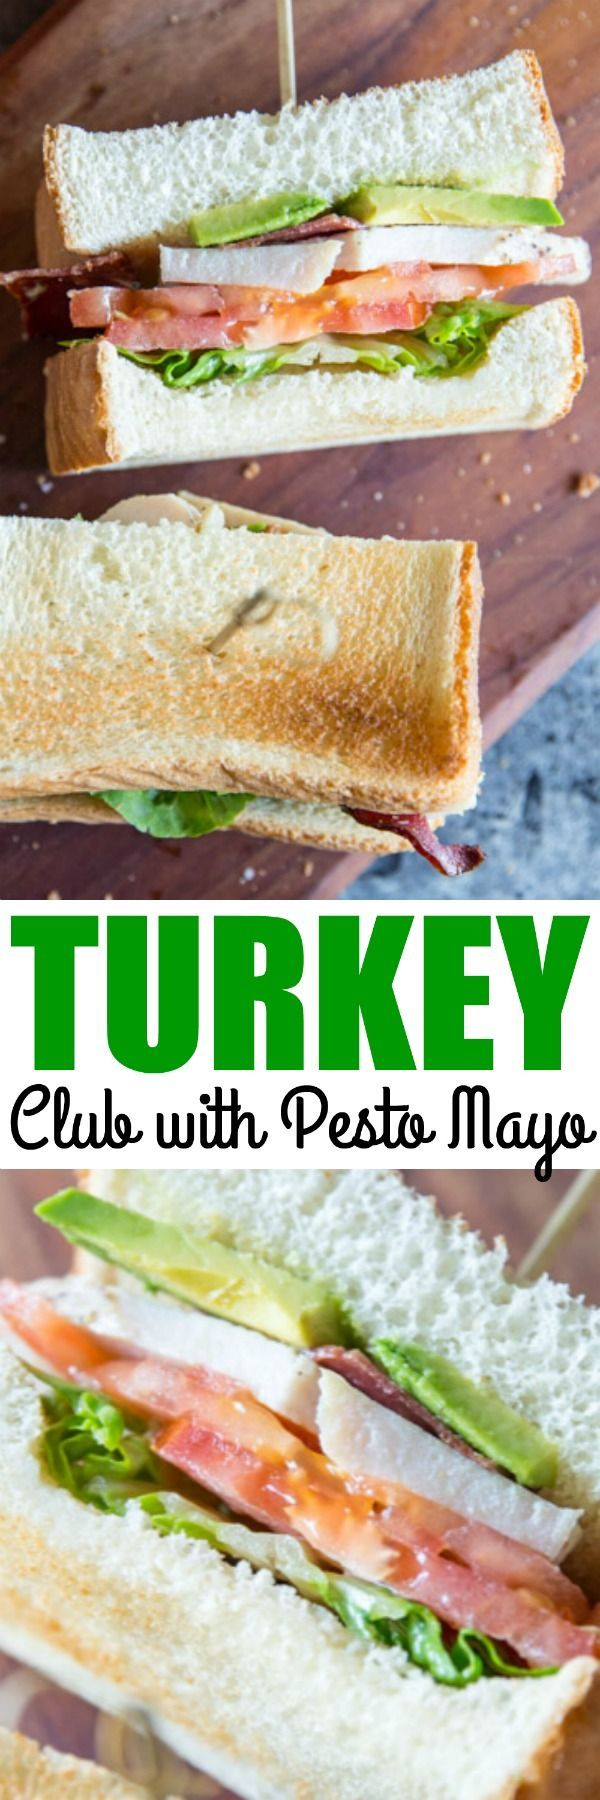 Roasted turkey tenderloin, pesto mayo, and avocado make this Turkey Club Sandwich the toast of the town. It's simplicity at its finest and most delicious! via @culinaryhill